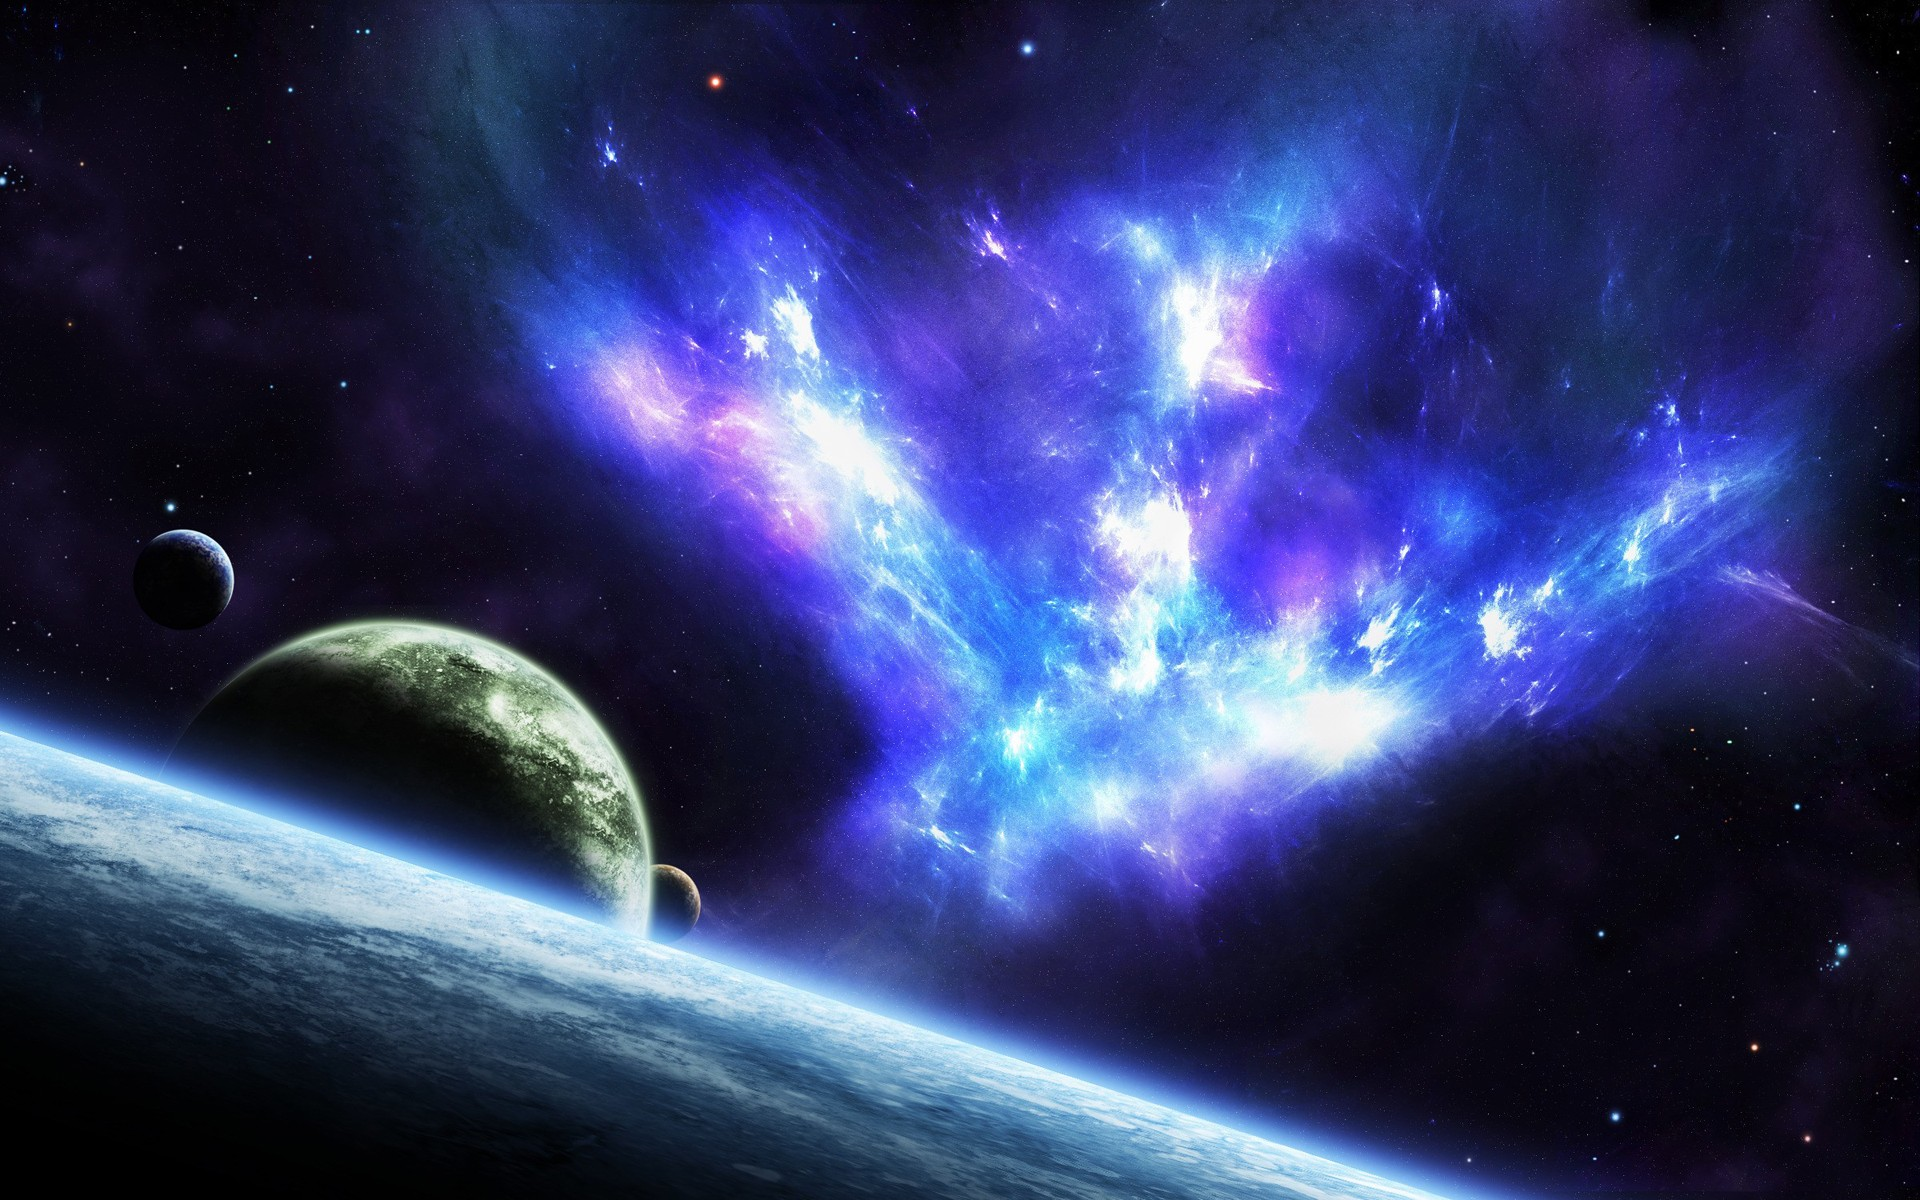 Space stars planets wallpaper 1920x1200 34666 for Outer space planets